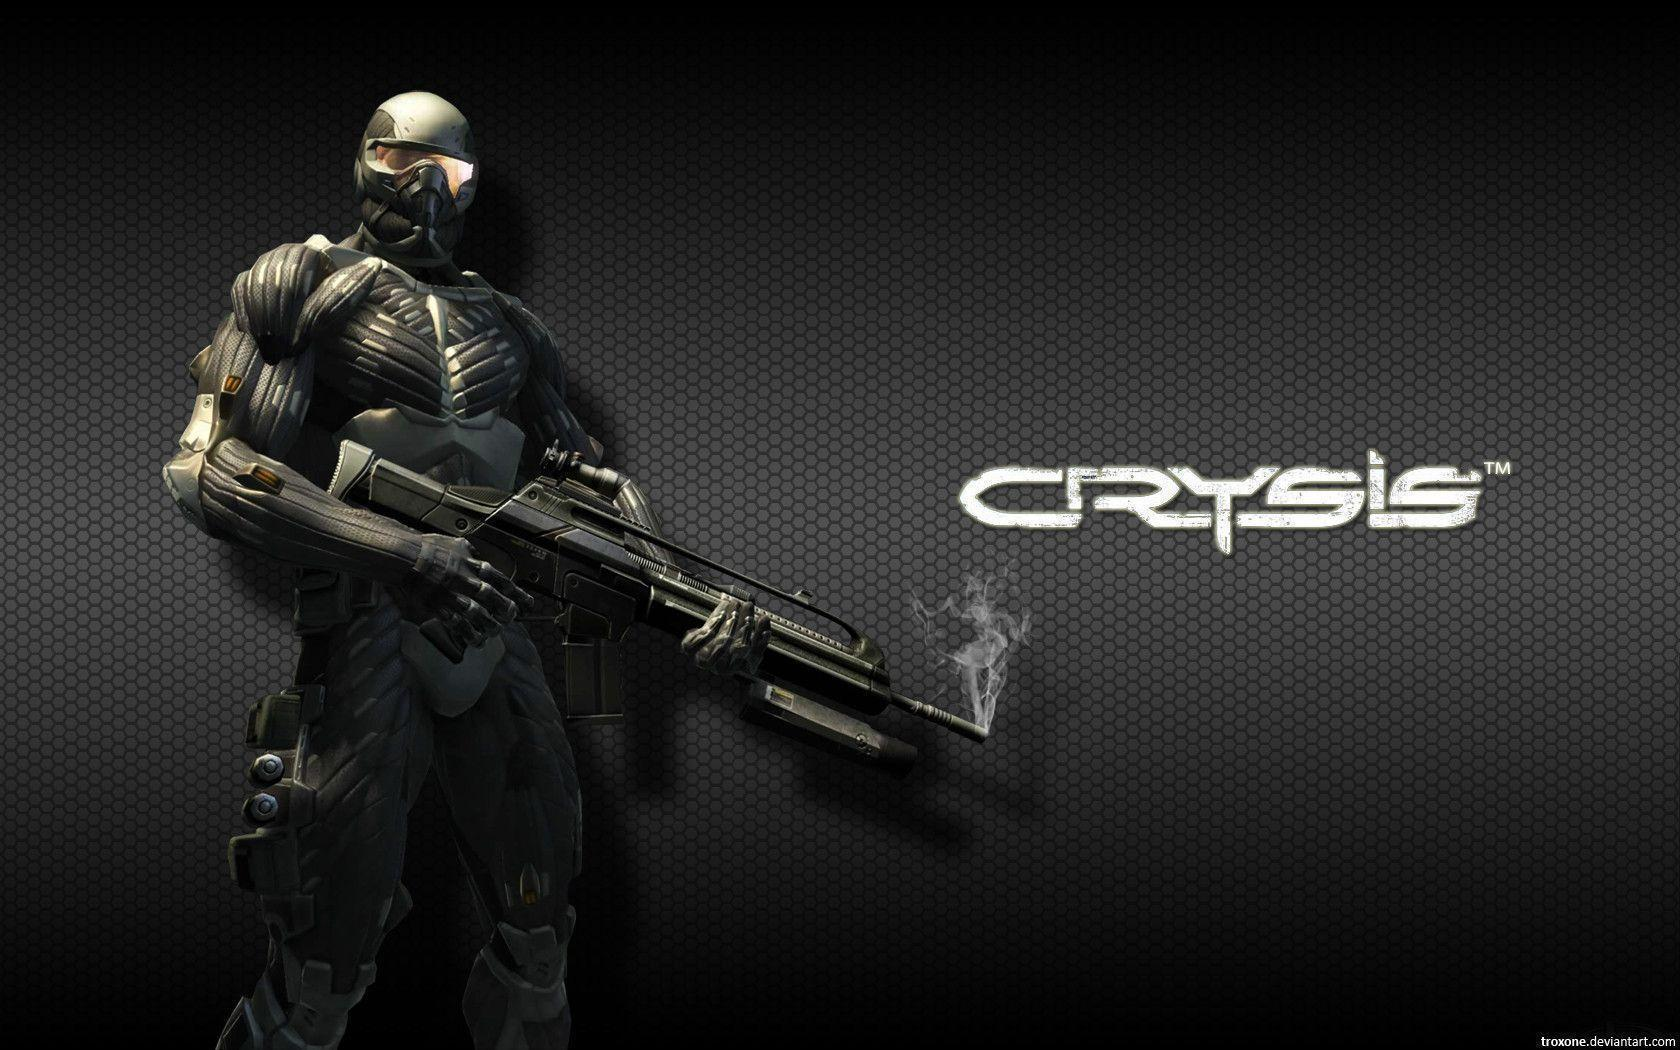 crysis 4 wallpaper hd - photo #11